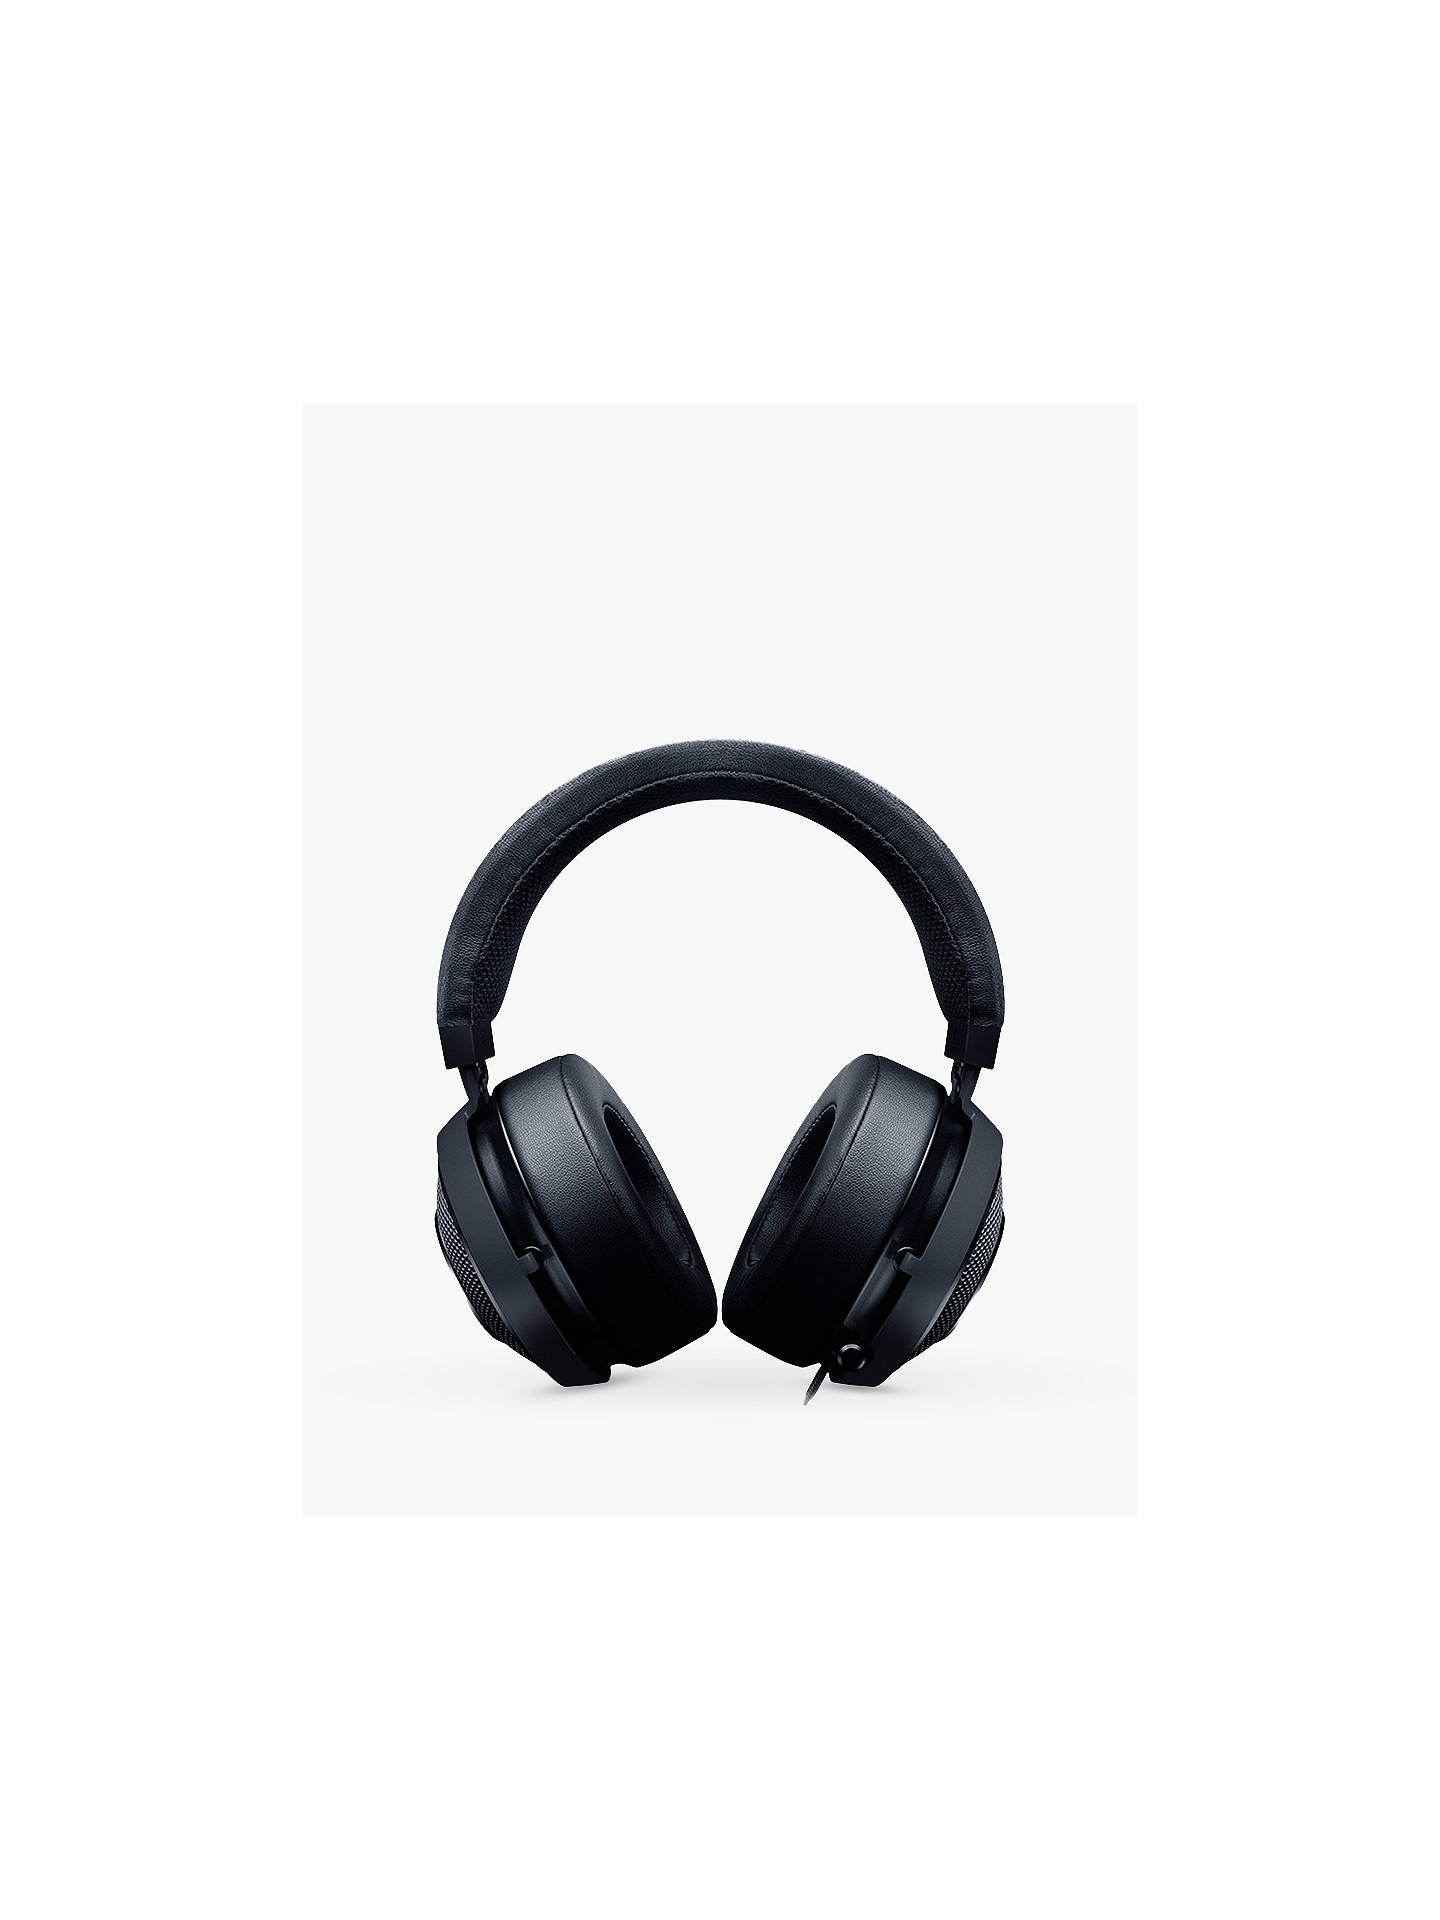 BuyRazer Kraken 7.1 Gaming Headset Online at johnlewis.com ... 7b61e943db